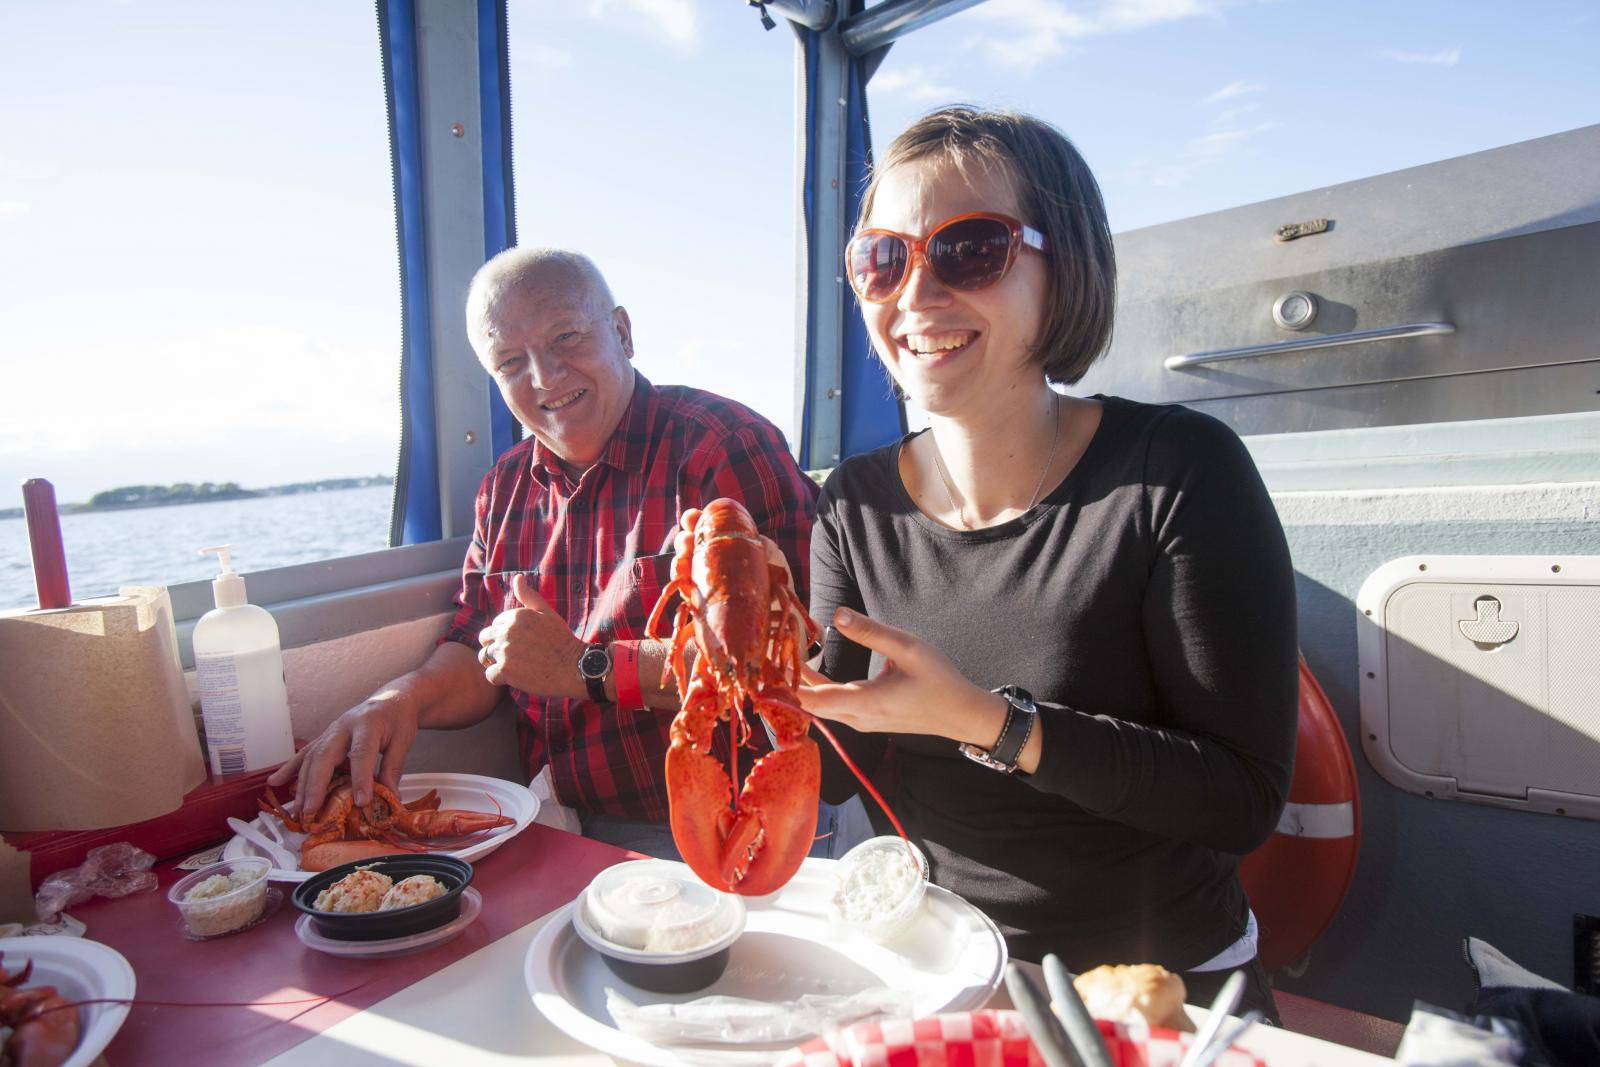 Ambassador Cruise Ship Lobster Dinner, Moncton, NB